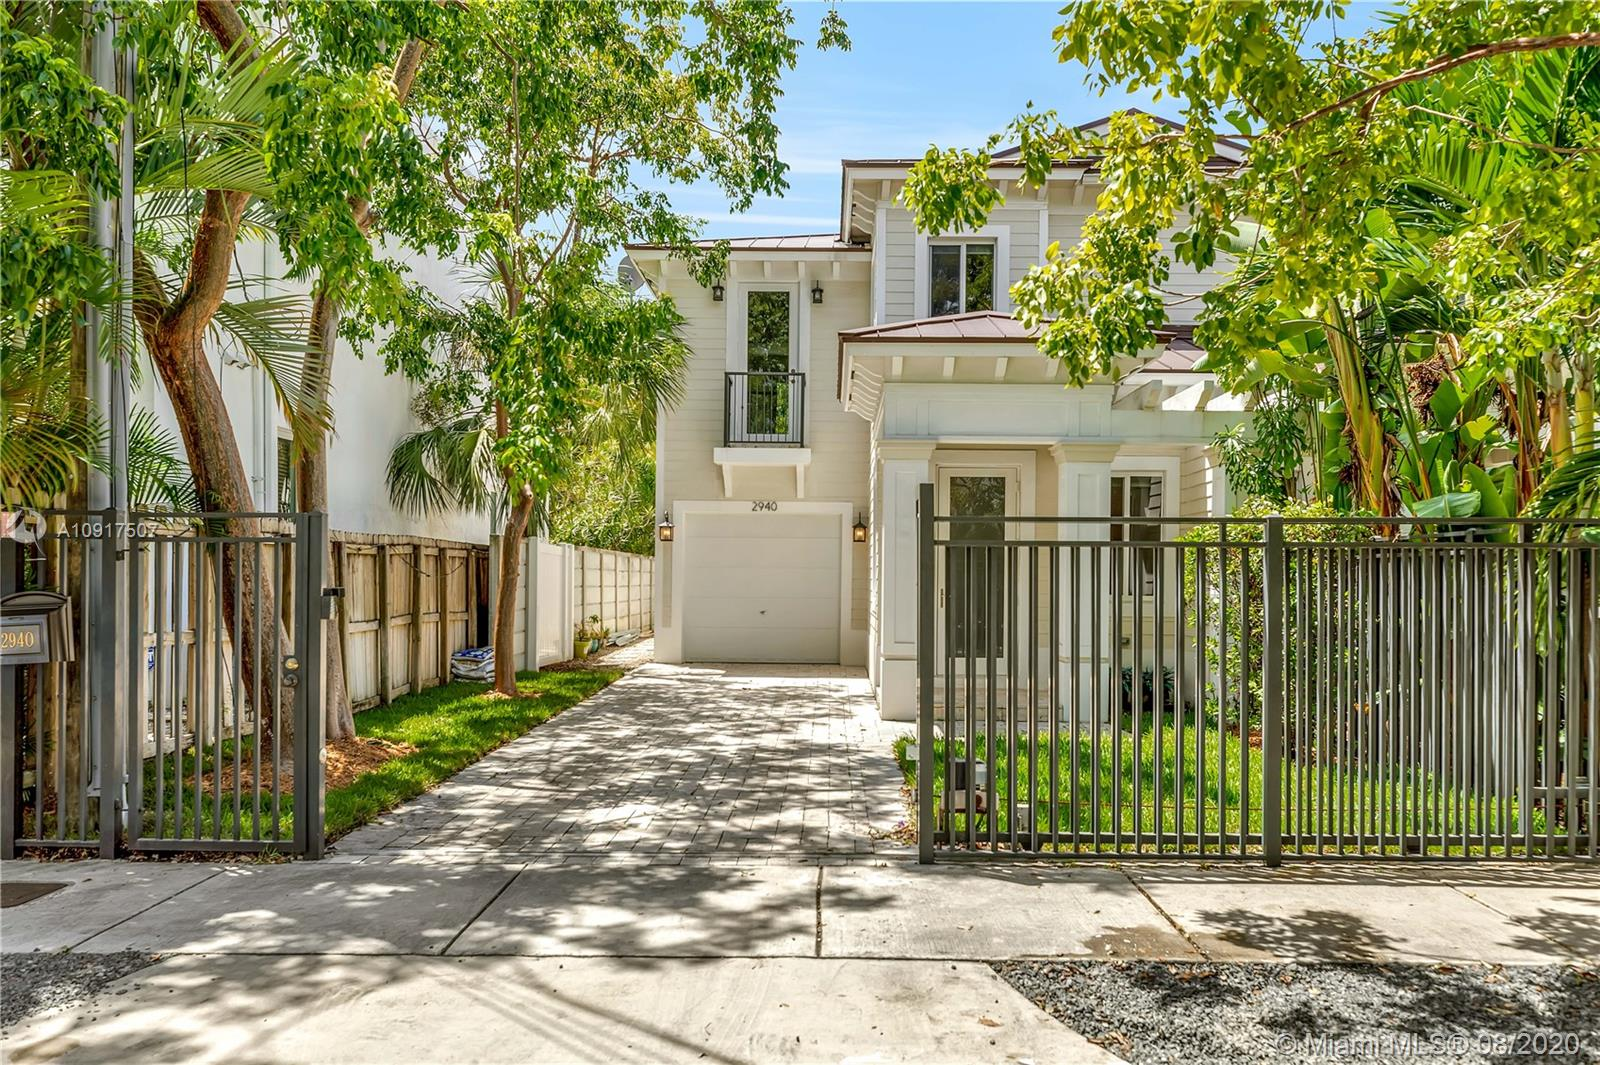 Welcome to Key West in Coconut Grove! This stunning 2015 Construction 3bed/2.5bath Townhouse with 2464 sqft of living space & private pool features: Italian tile floors downstairs & hardwood floors in the upstairs bedrooms.  Entertain in your spacious living area which flows directly through French doors into your private indoor/outdoor living space & pool. Modern open concept kitchen opens towards your dedicated dining area. Upstairs enjoy your spacious master suite w/huge master closets, spa retreat bathroom w/double sinks, Jacuzzi tub & shower. Both second & third bedrooms are ample size w/private closets & access to the second bathroom. Private gated garage, lush landscaping & private cul-de-sac complete this dream home. Feels like a house & walking distance to shops & restaurants.